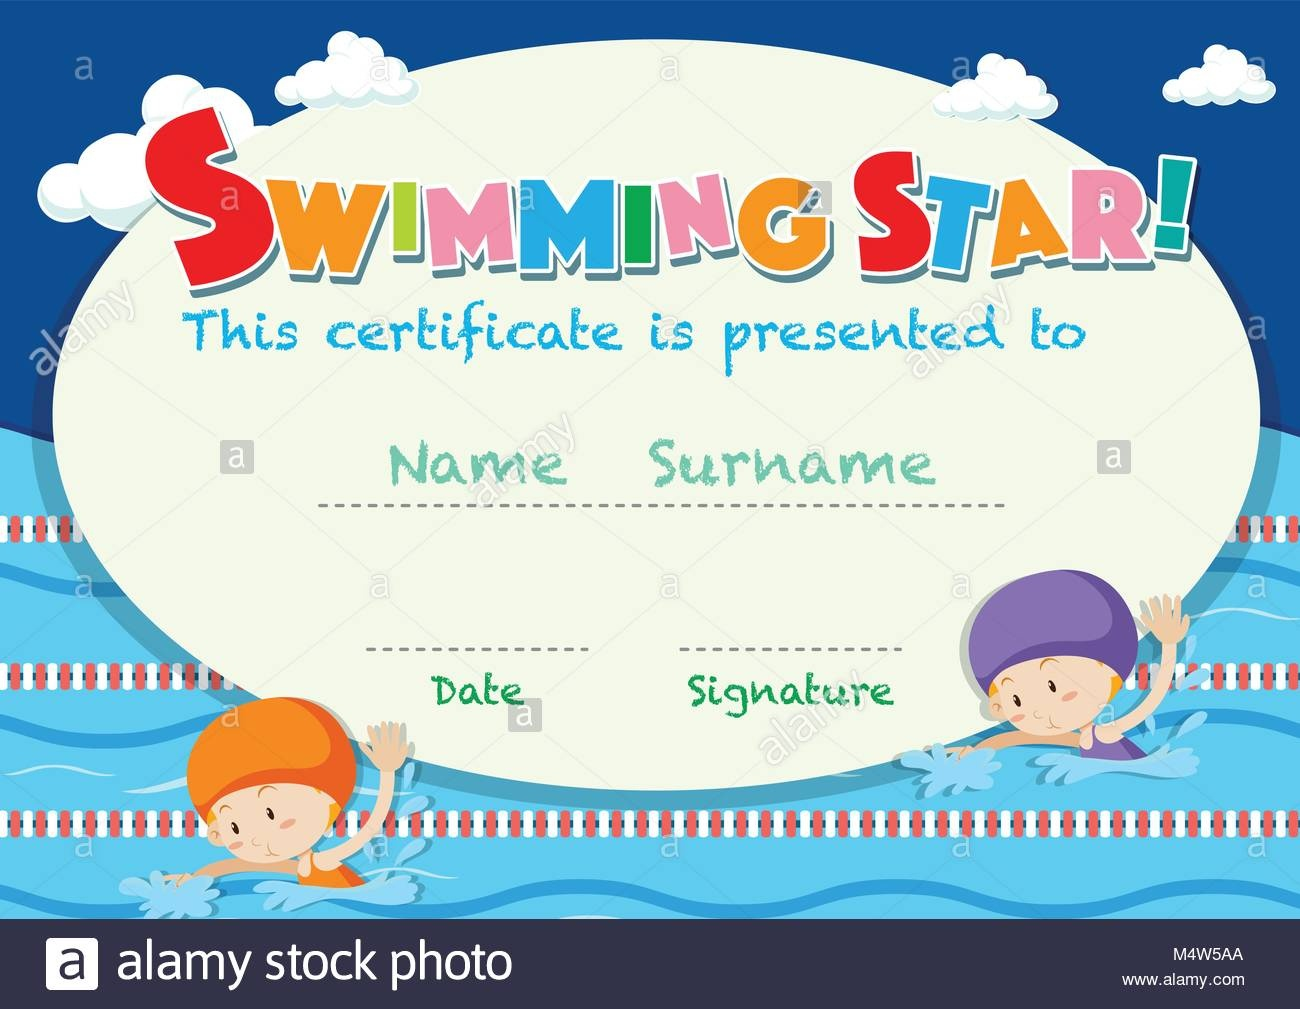 Swimming Certificate - Kaza.psstech.co - Free Printable Swimming Certificates For Kids